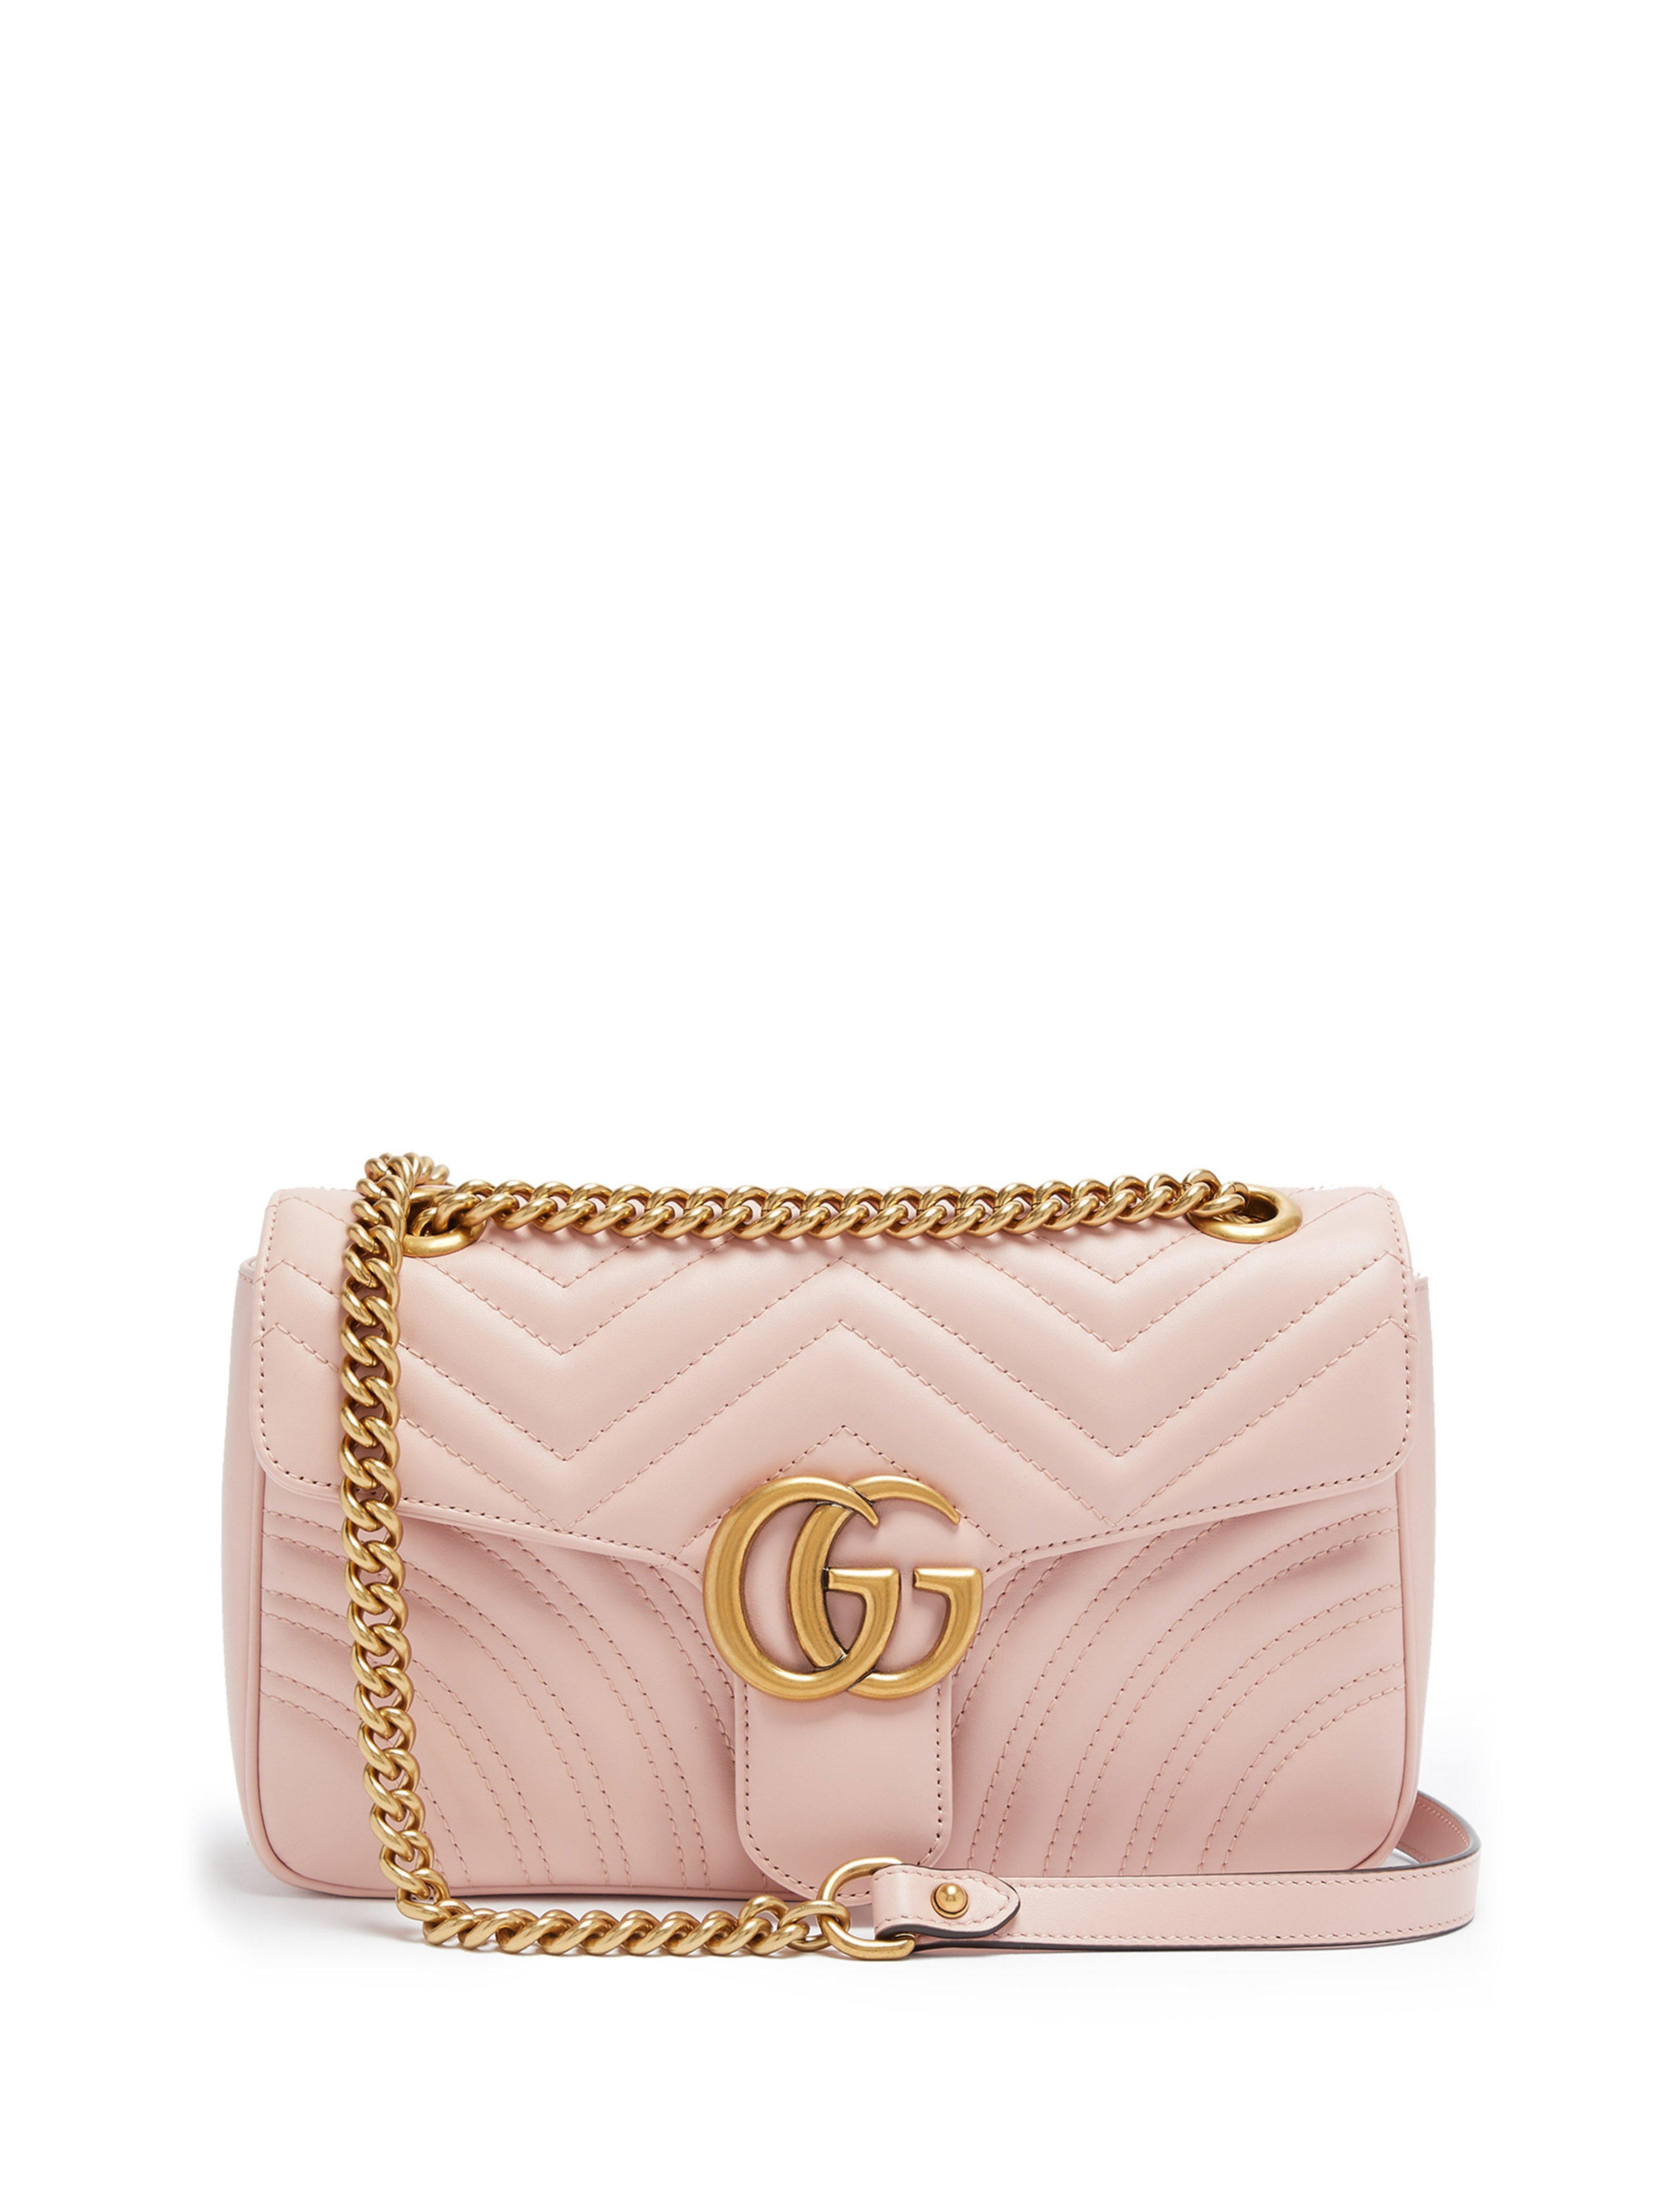 be31c080fce Gucci Gg Marmont Small Quilted Leather Shoulder Bag in Pink - Save ...